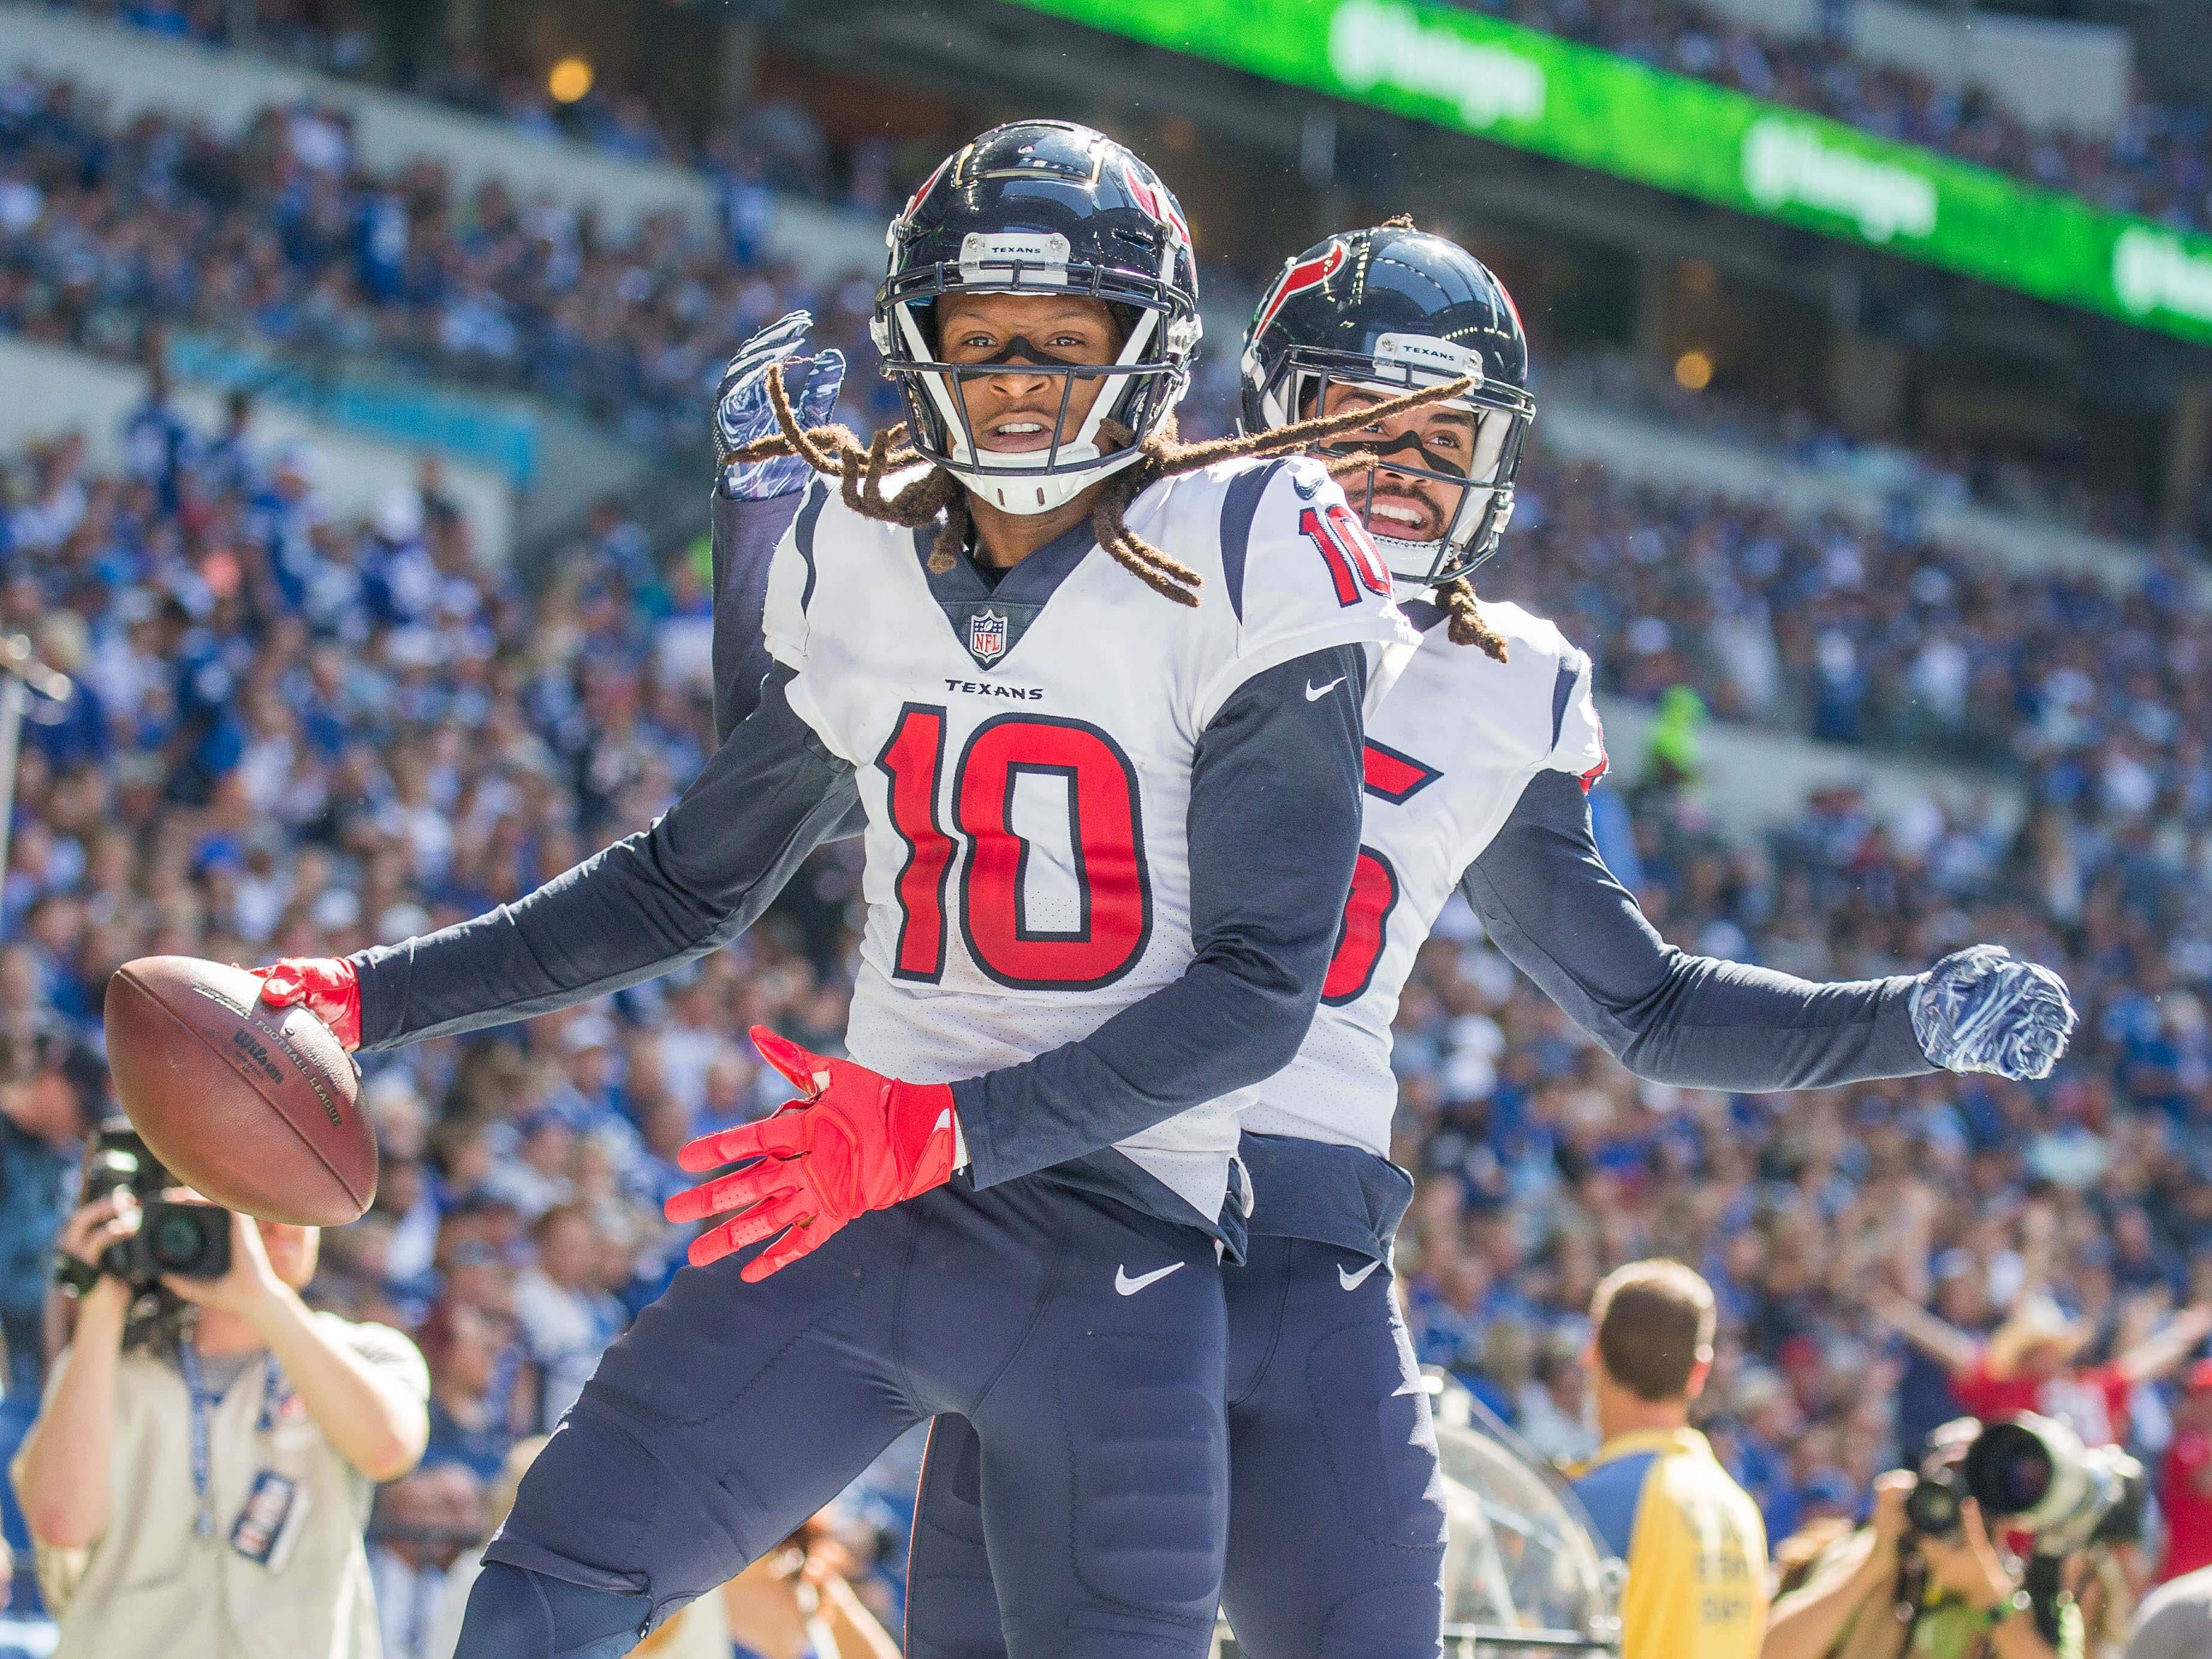 Texans wide receiver DeAndre Hopkins (10) celebrates his touchdown with wide receiver Will Fuller (15).